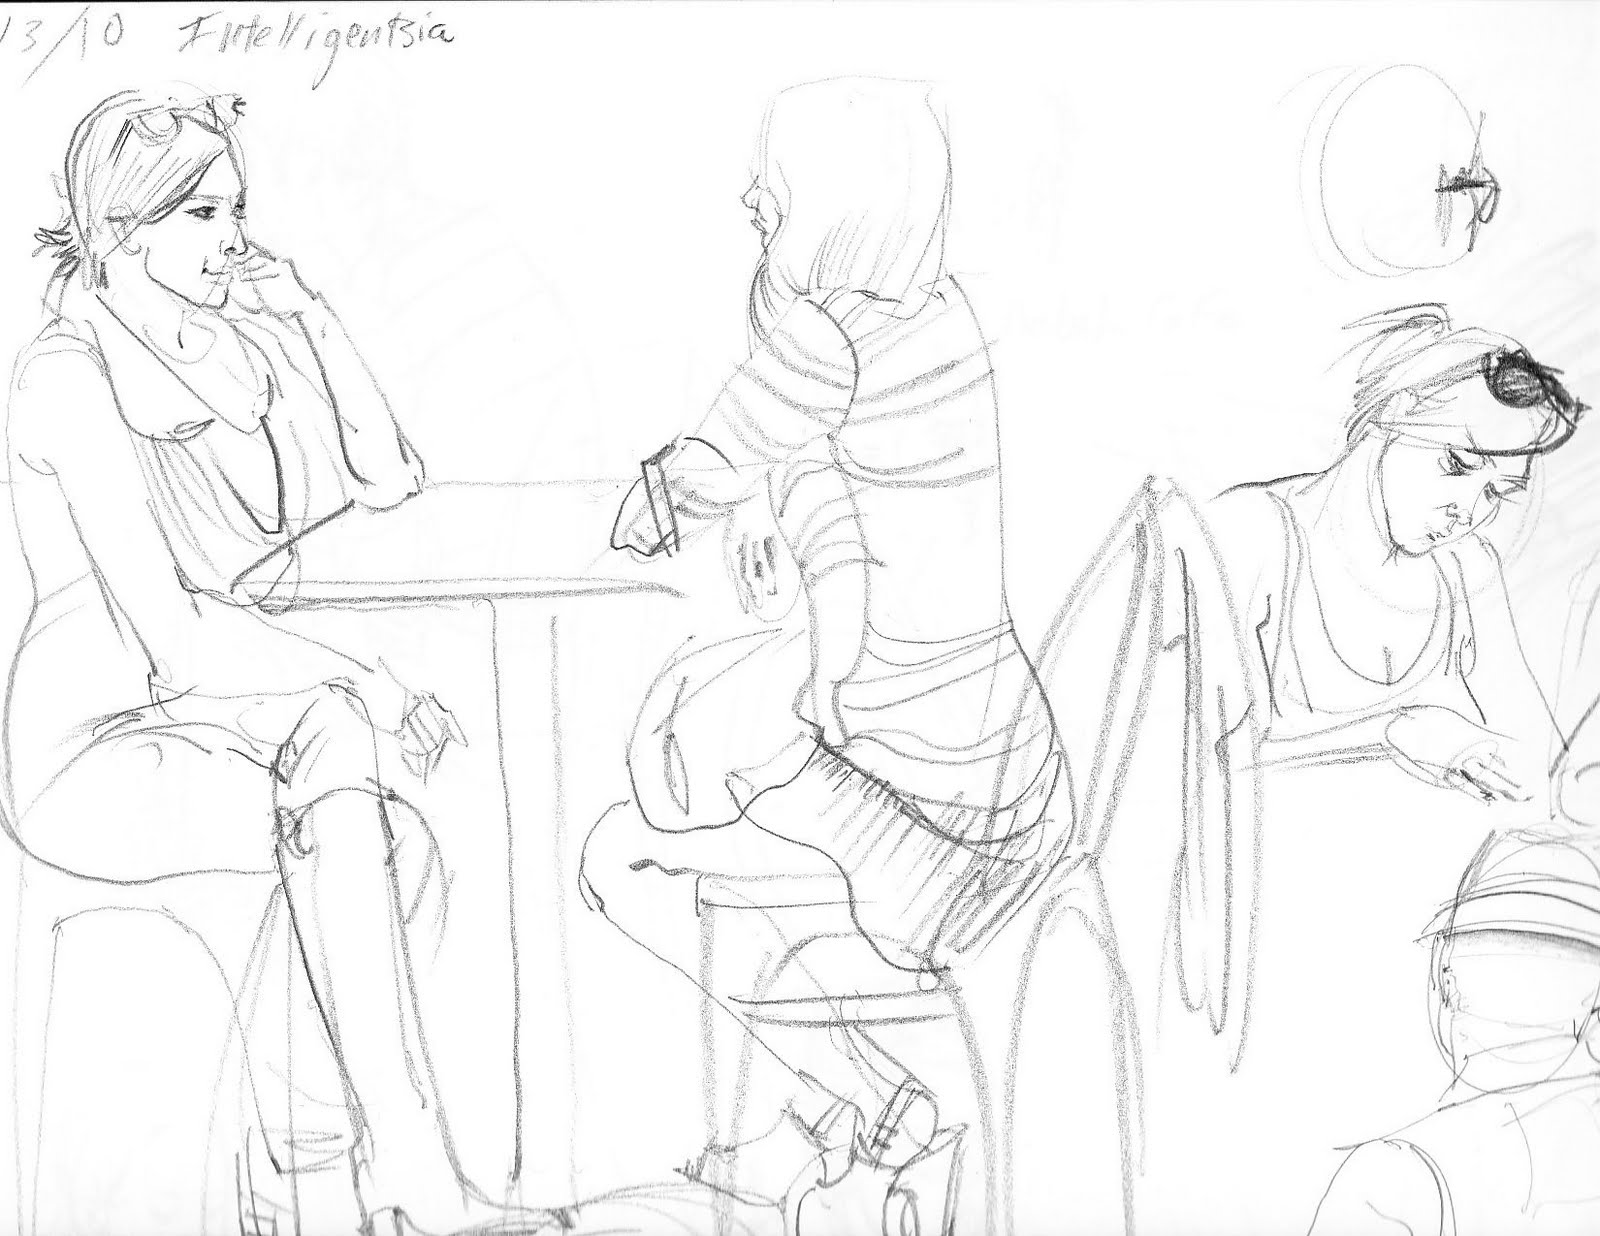 Zayo Coffee Shop Drawings For The Weeks Of August 2nd